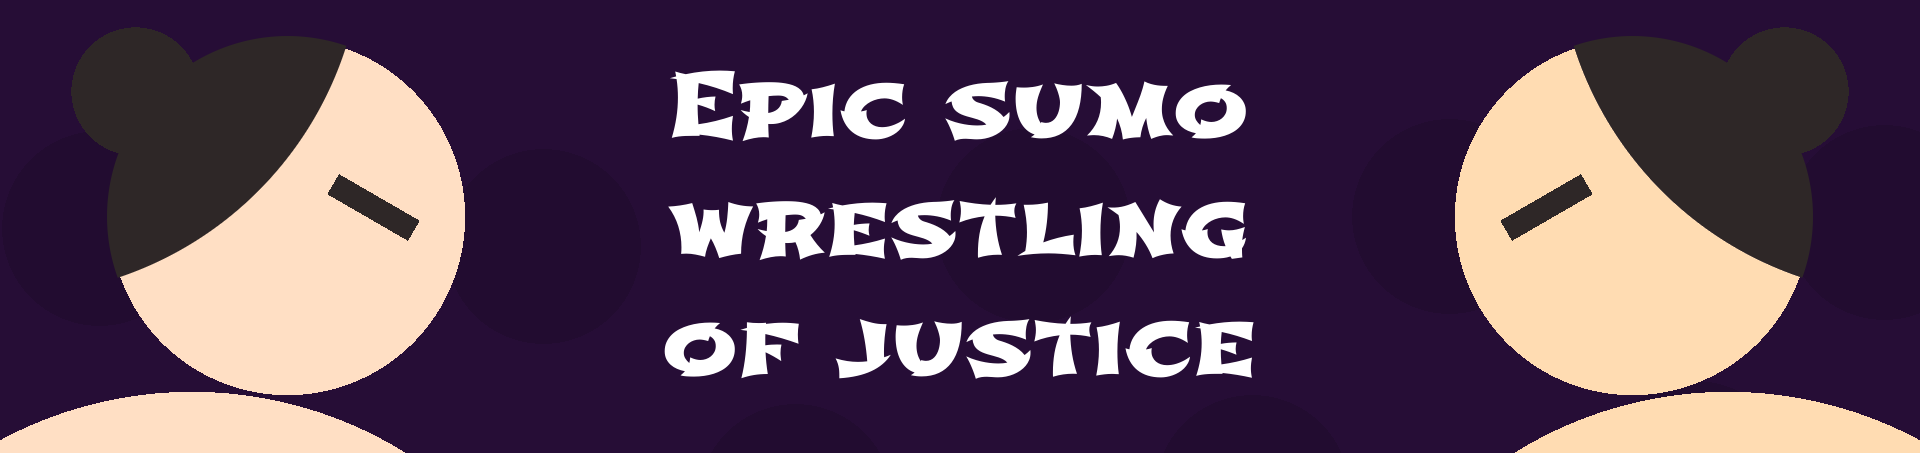 Epic Sumo Wrestling of Justice